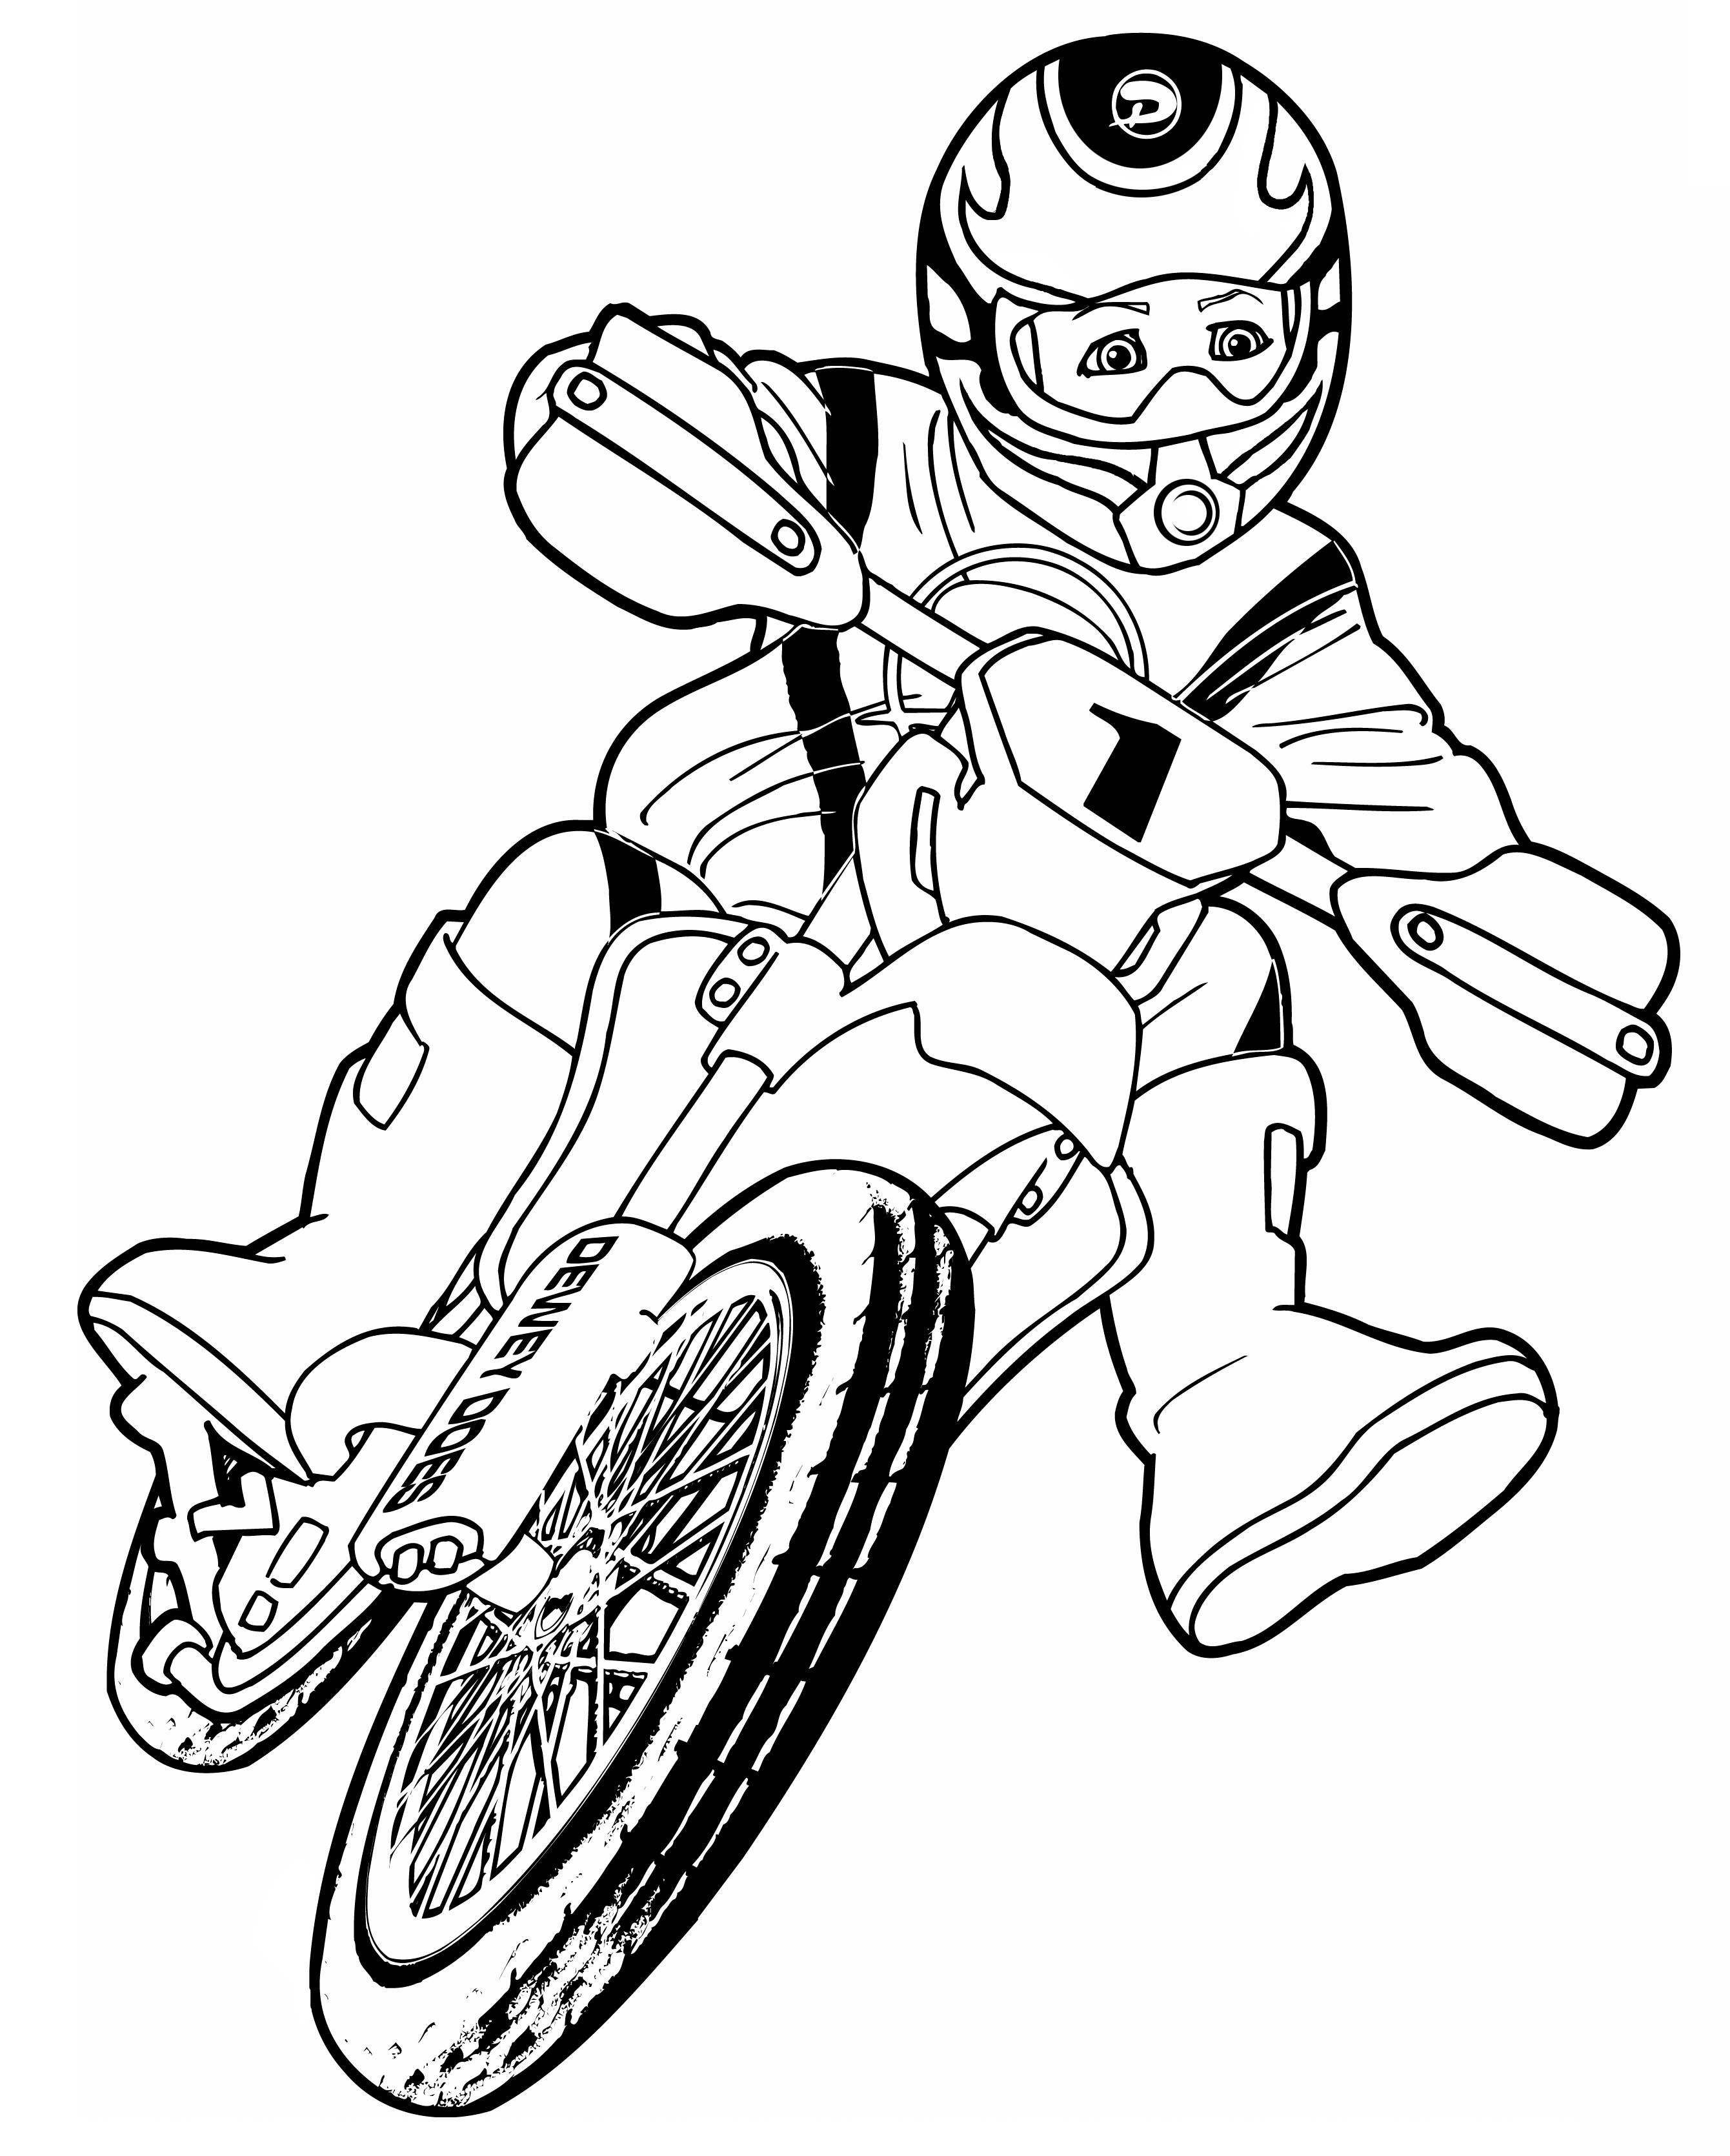 dirt bike pictures to color dirt bike coloring pages free coloring pages for kids 5 to color dirt bike pictures